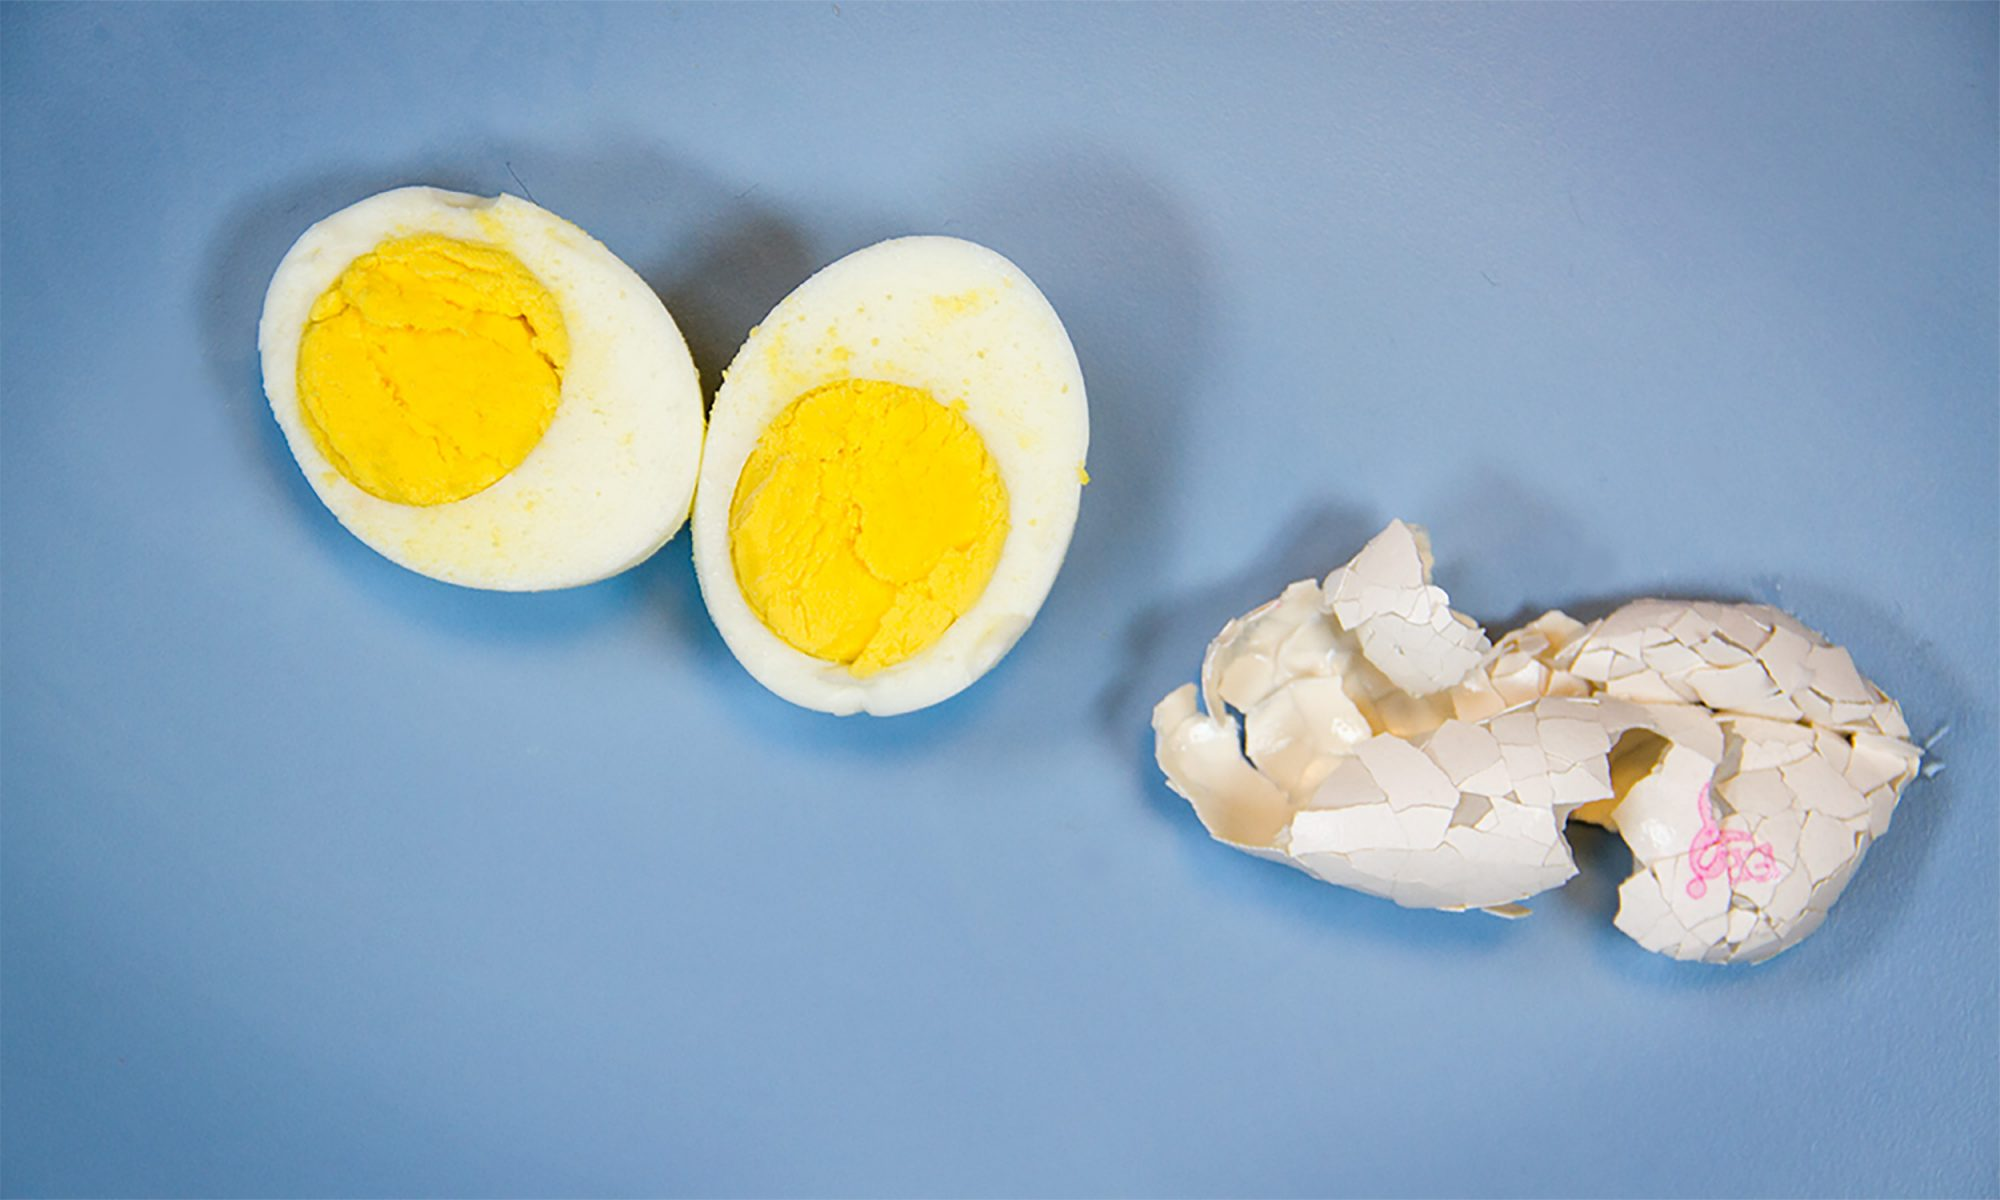 EC: How to Peel a Hard-Boiled Egg in 5 Seconds